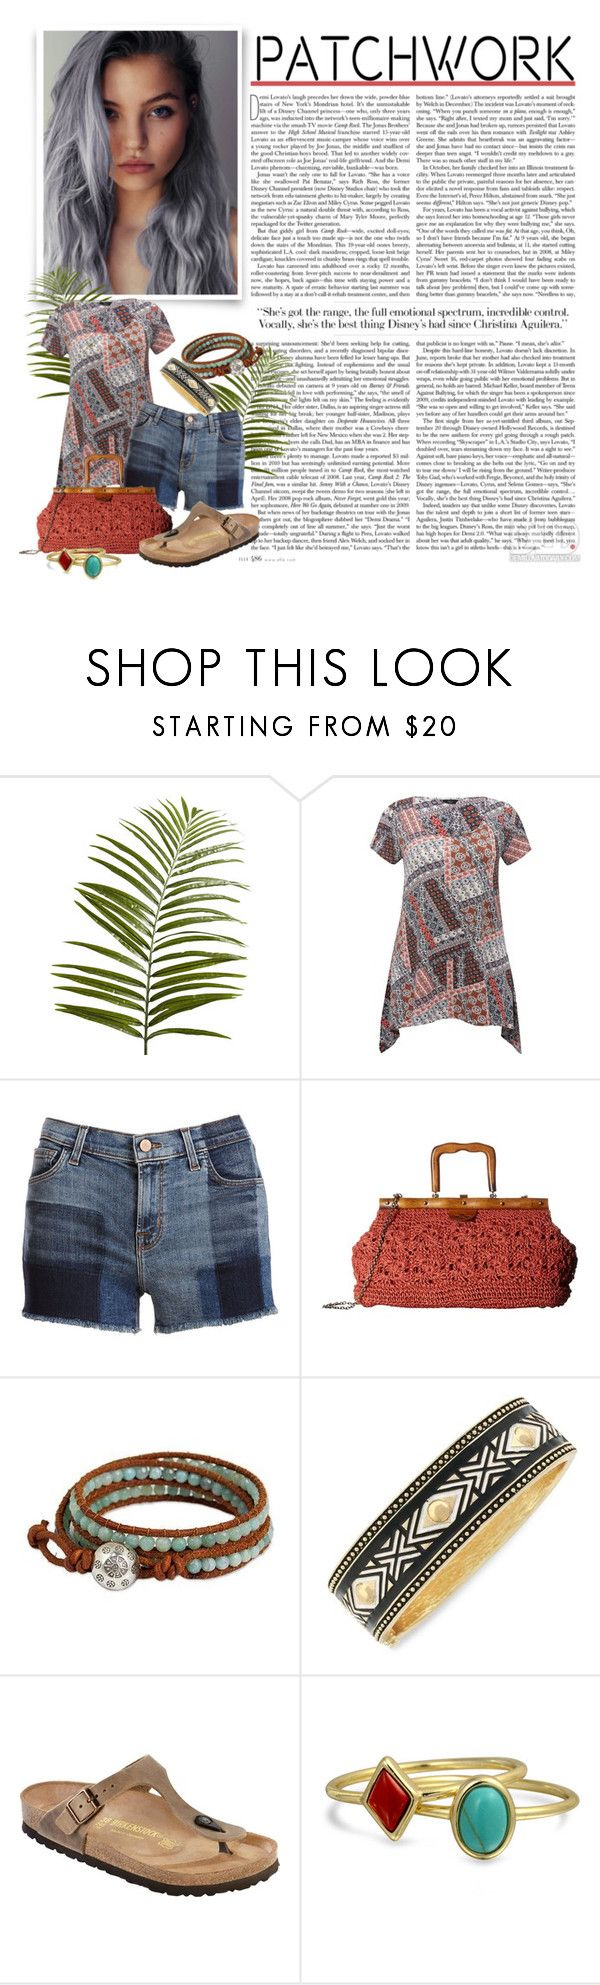 """""""Patchwork"""" by fashion-film-fun ❤ liked on Polyvore featuring Pier 1 Imports, M&Co, J Brand, Patricia Nash, NOVICA, Jessica Simpson, Birkenstock and Bling Jewelry"""